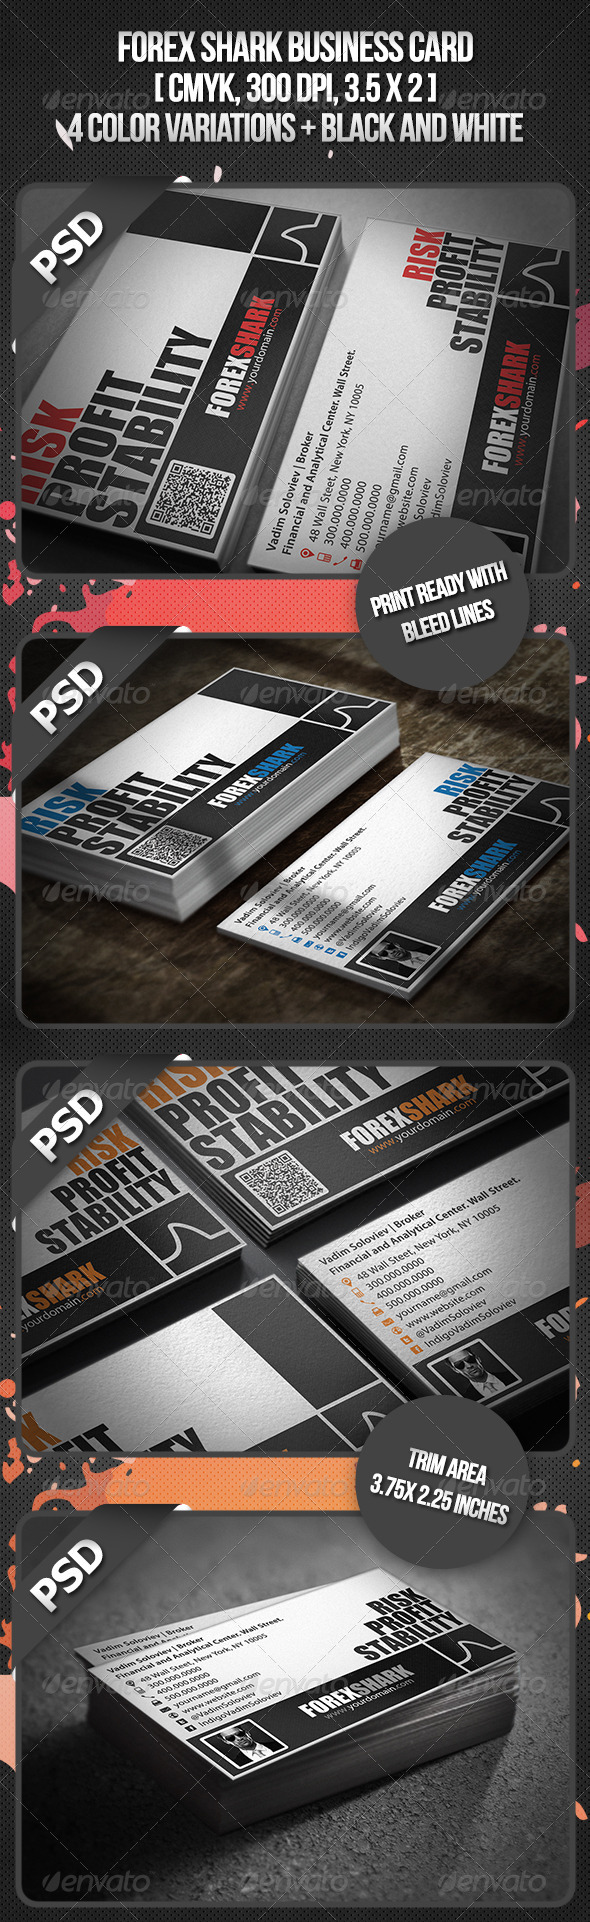 GraphicRiver Forex Shark Business Card 3522454